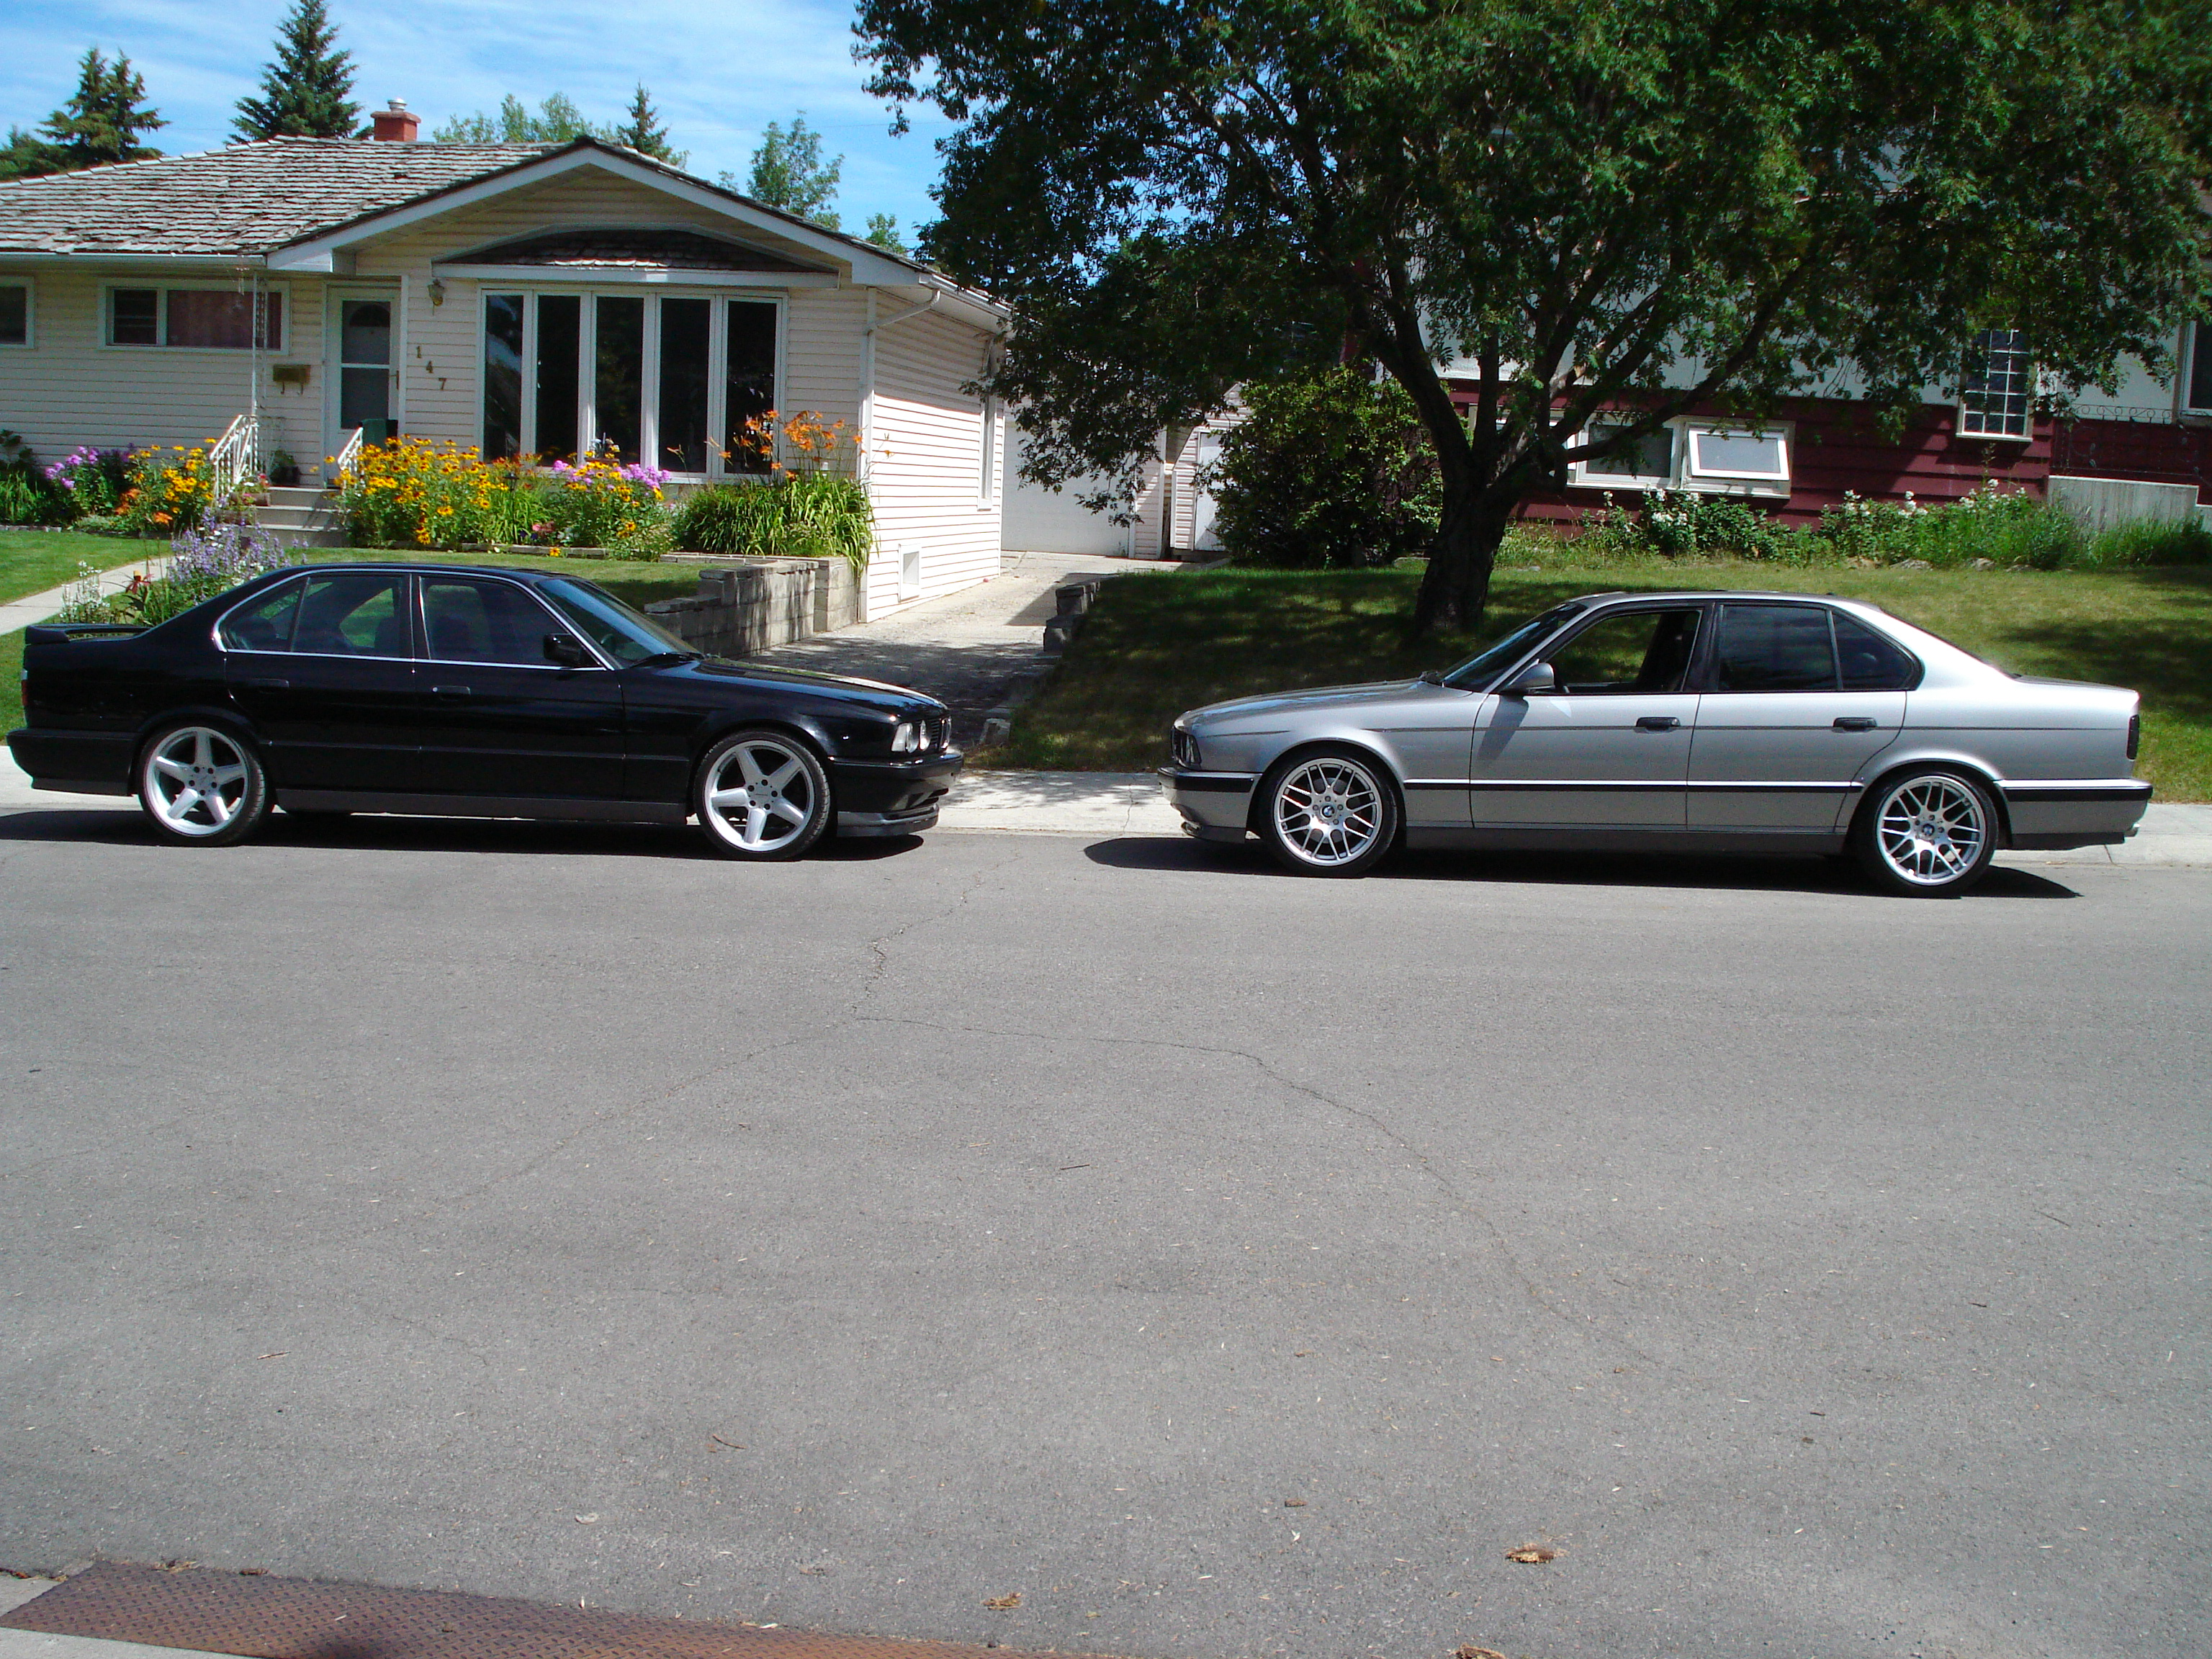 E M LACHS SILBER BMW M Forum And M Forums - 1990 bmw m5